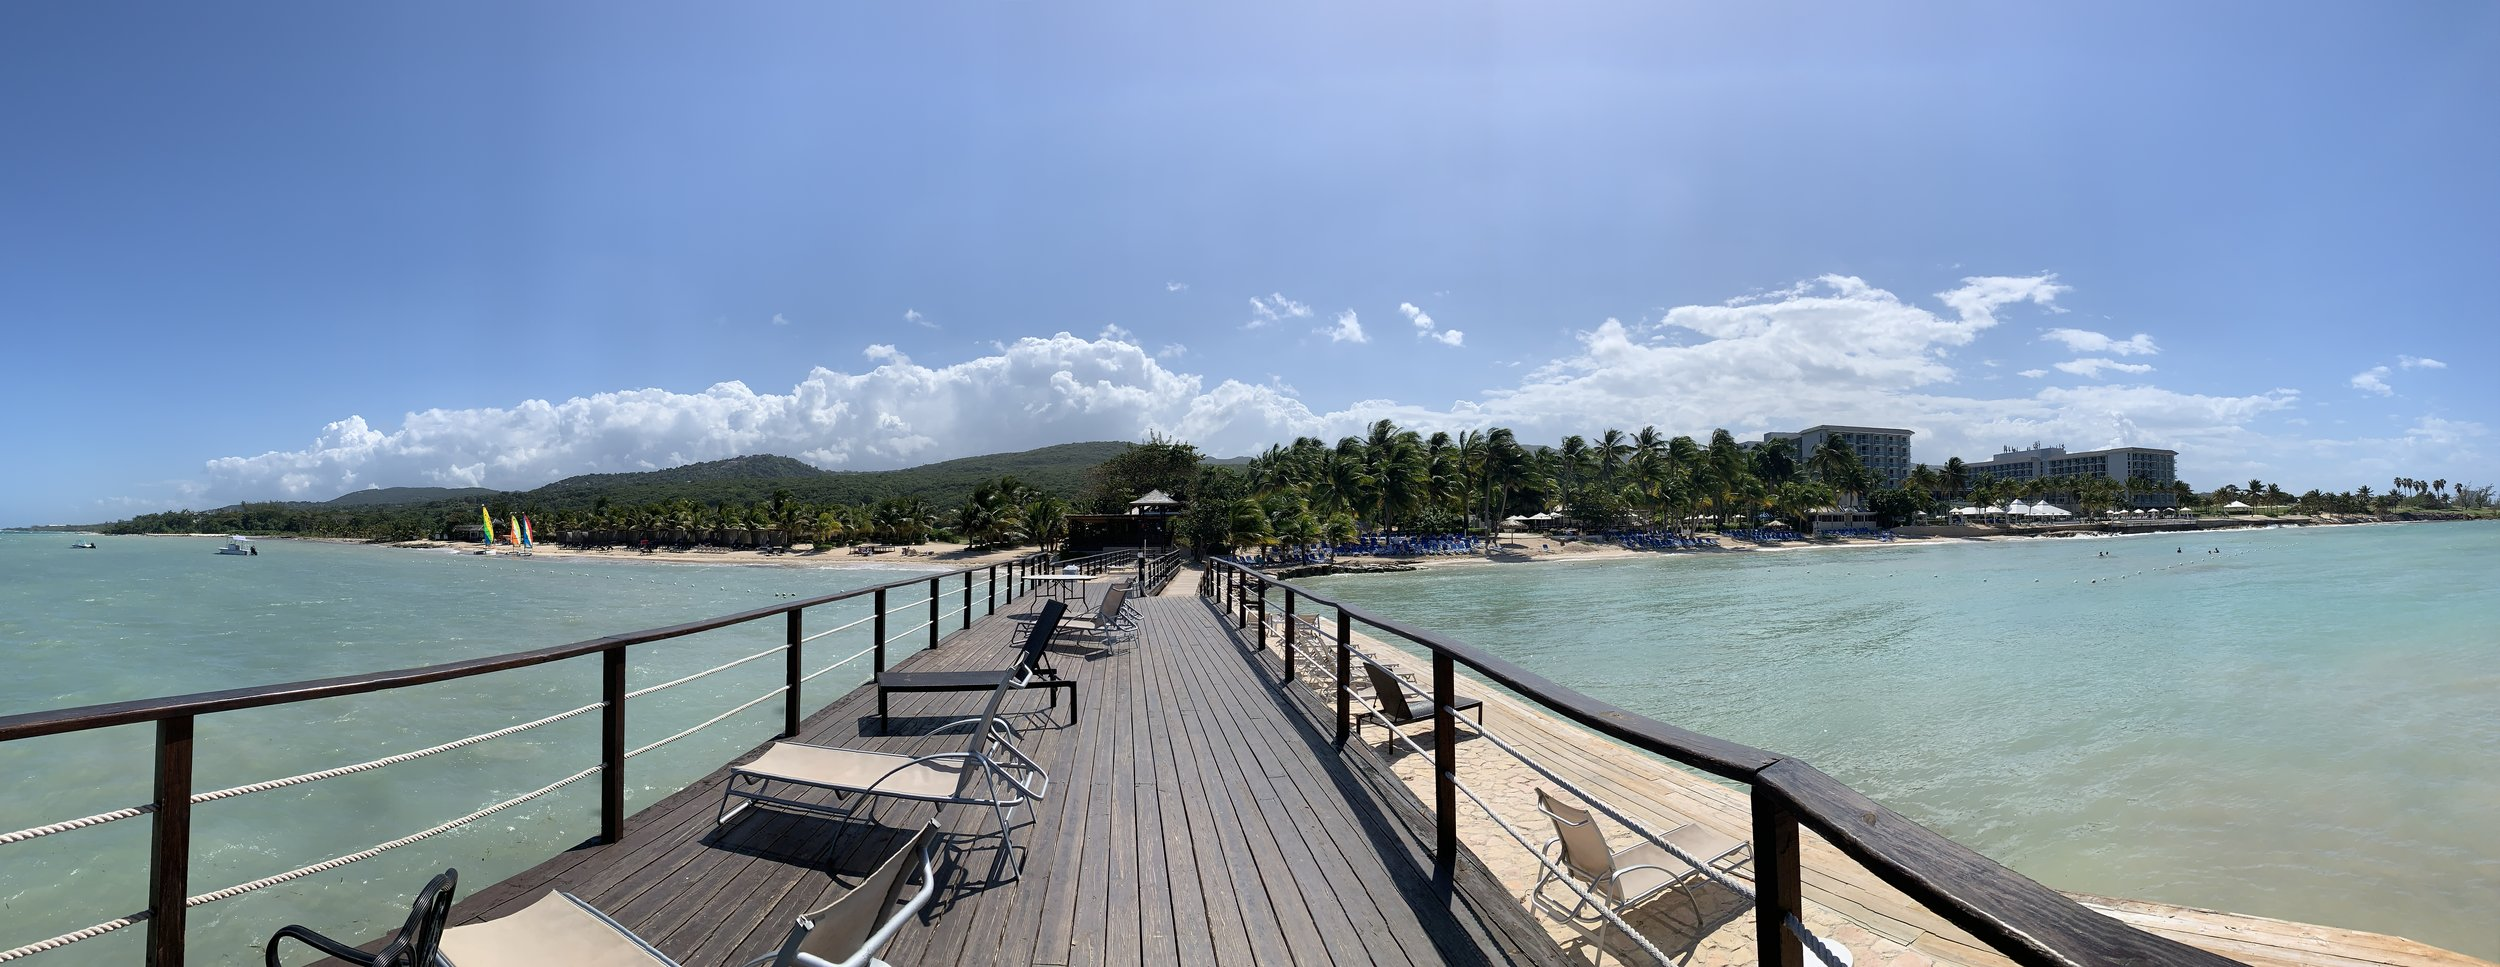 Panoramic view from the resort pier. To the left is the quiet beach, cabana rentals and activity rental desk. To the right is the pools and resort.